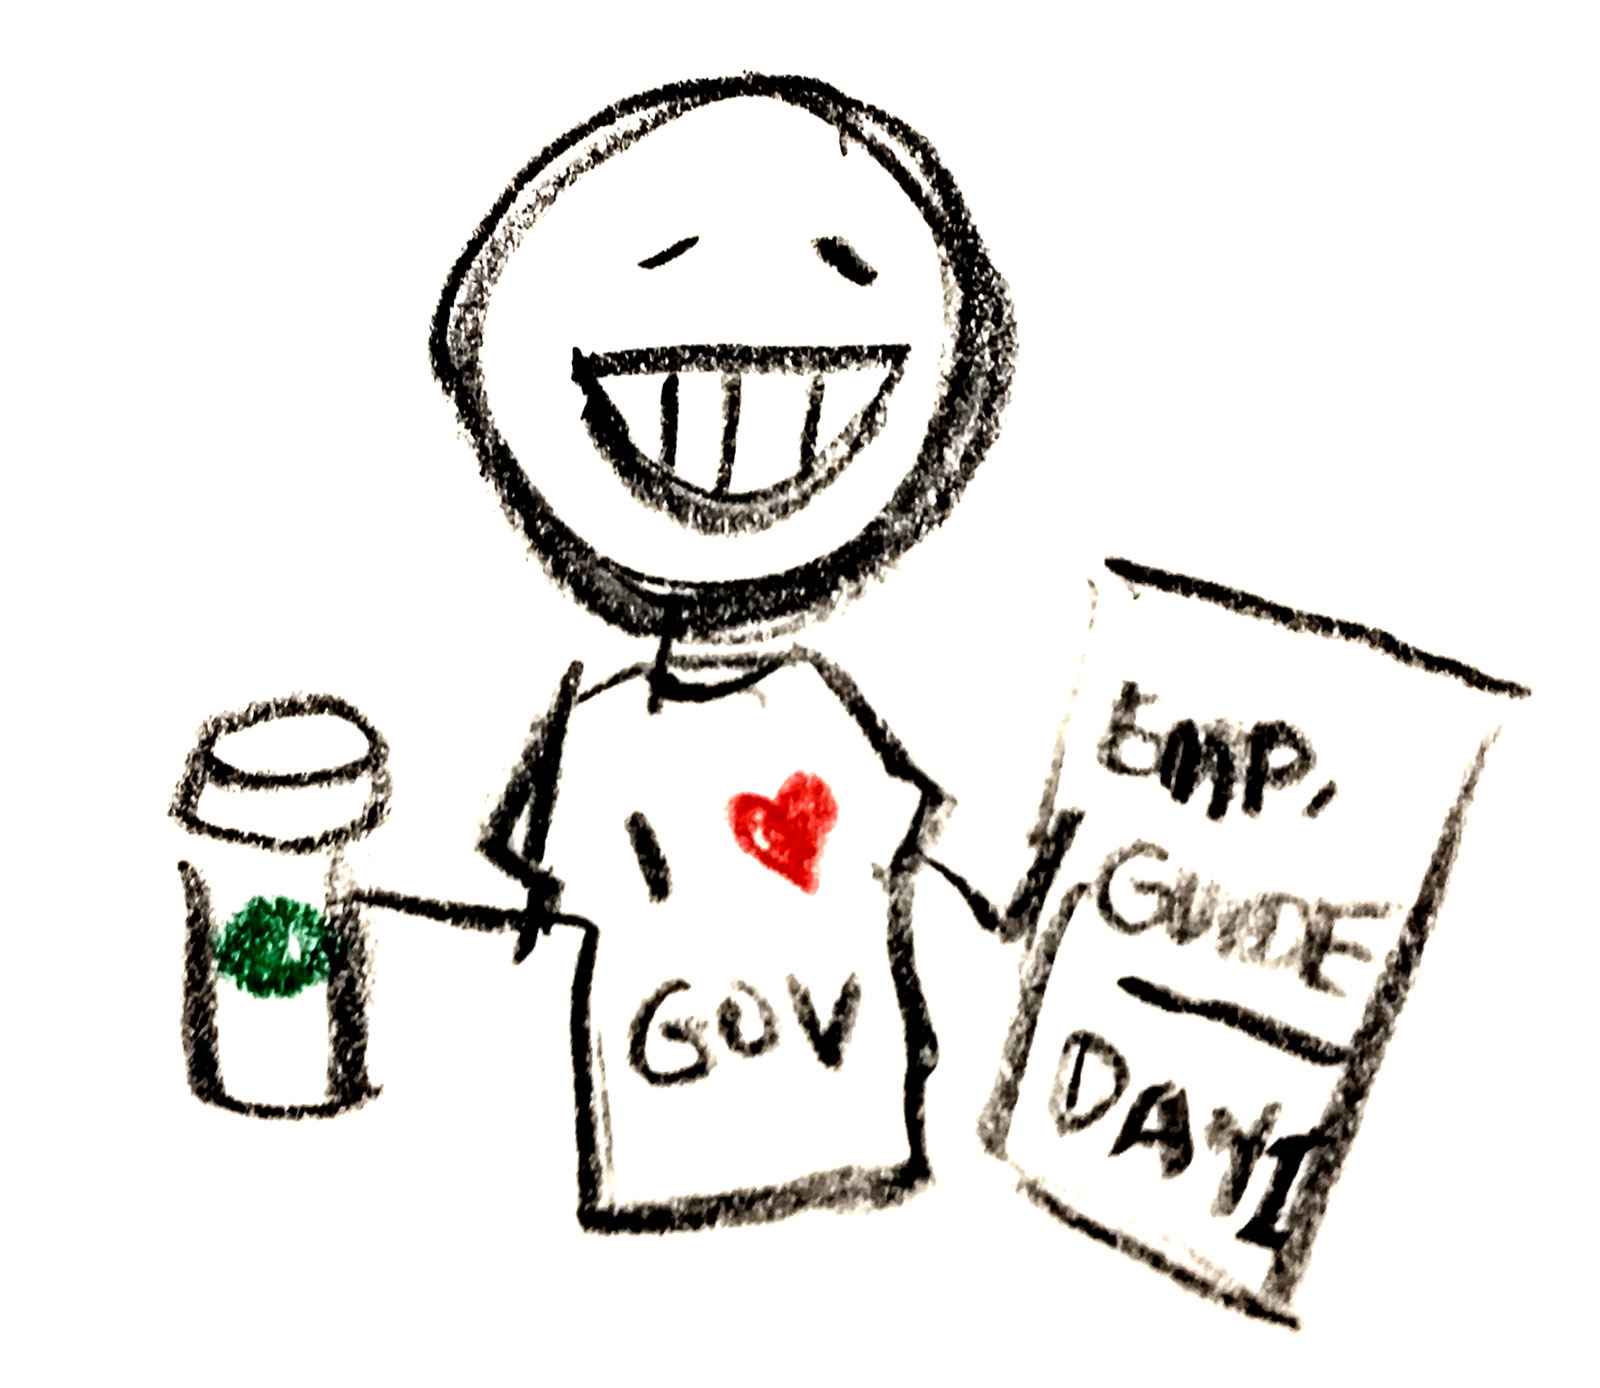 Stick figure of a person with an I heart gov shirt and a coffee cup.